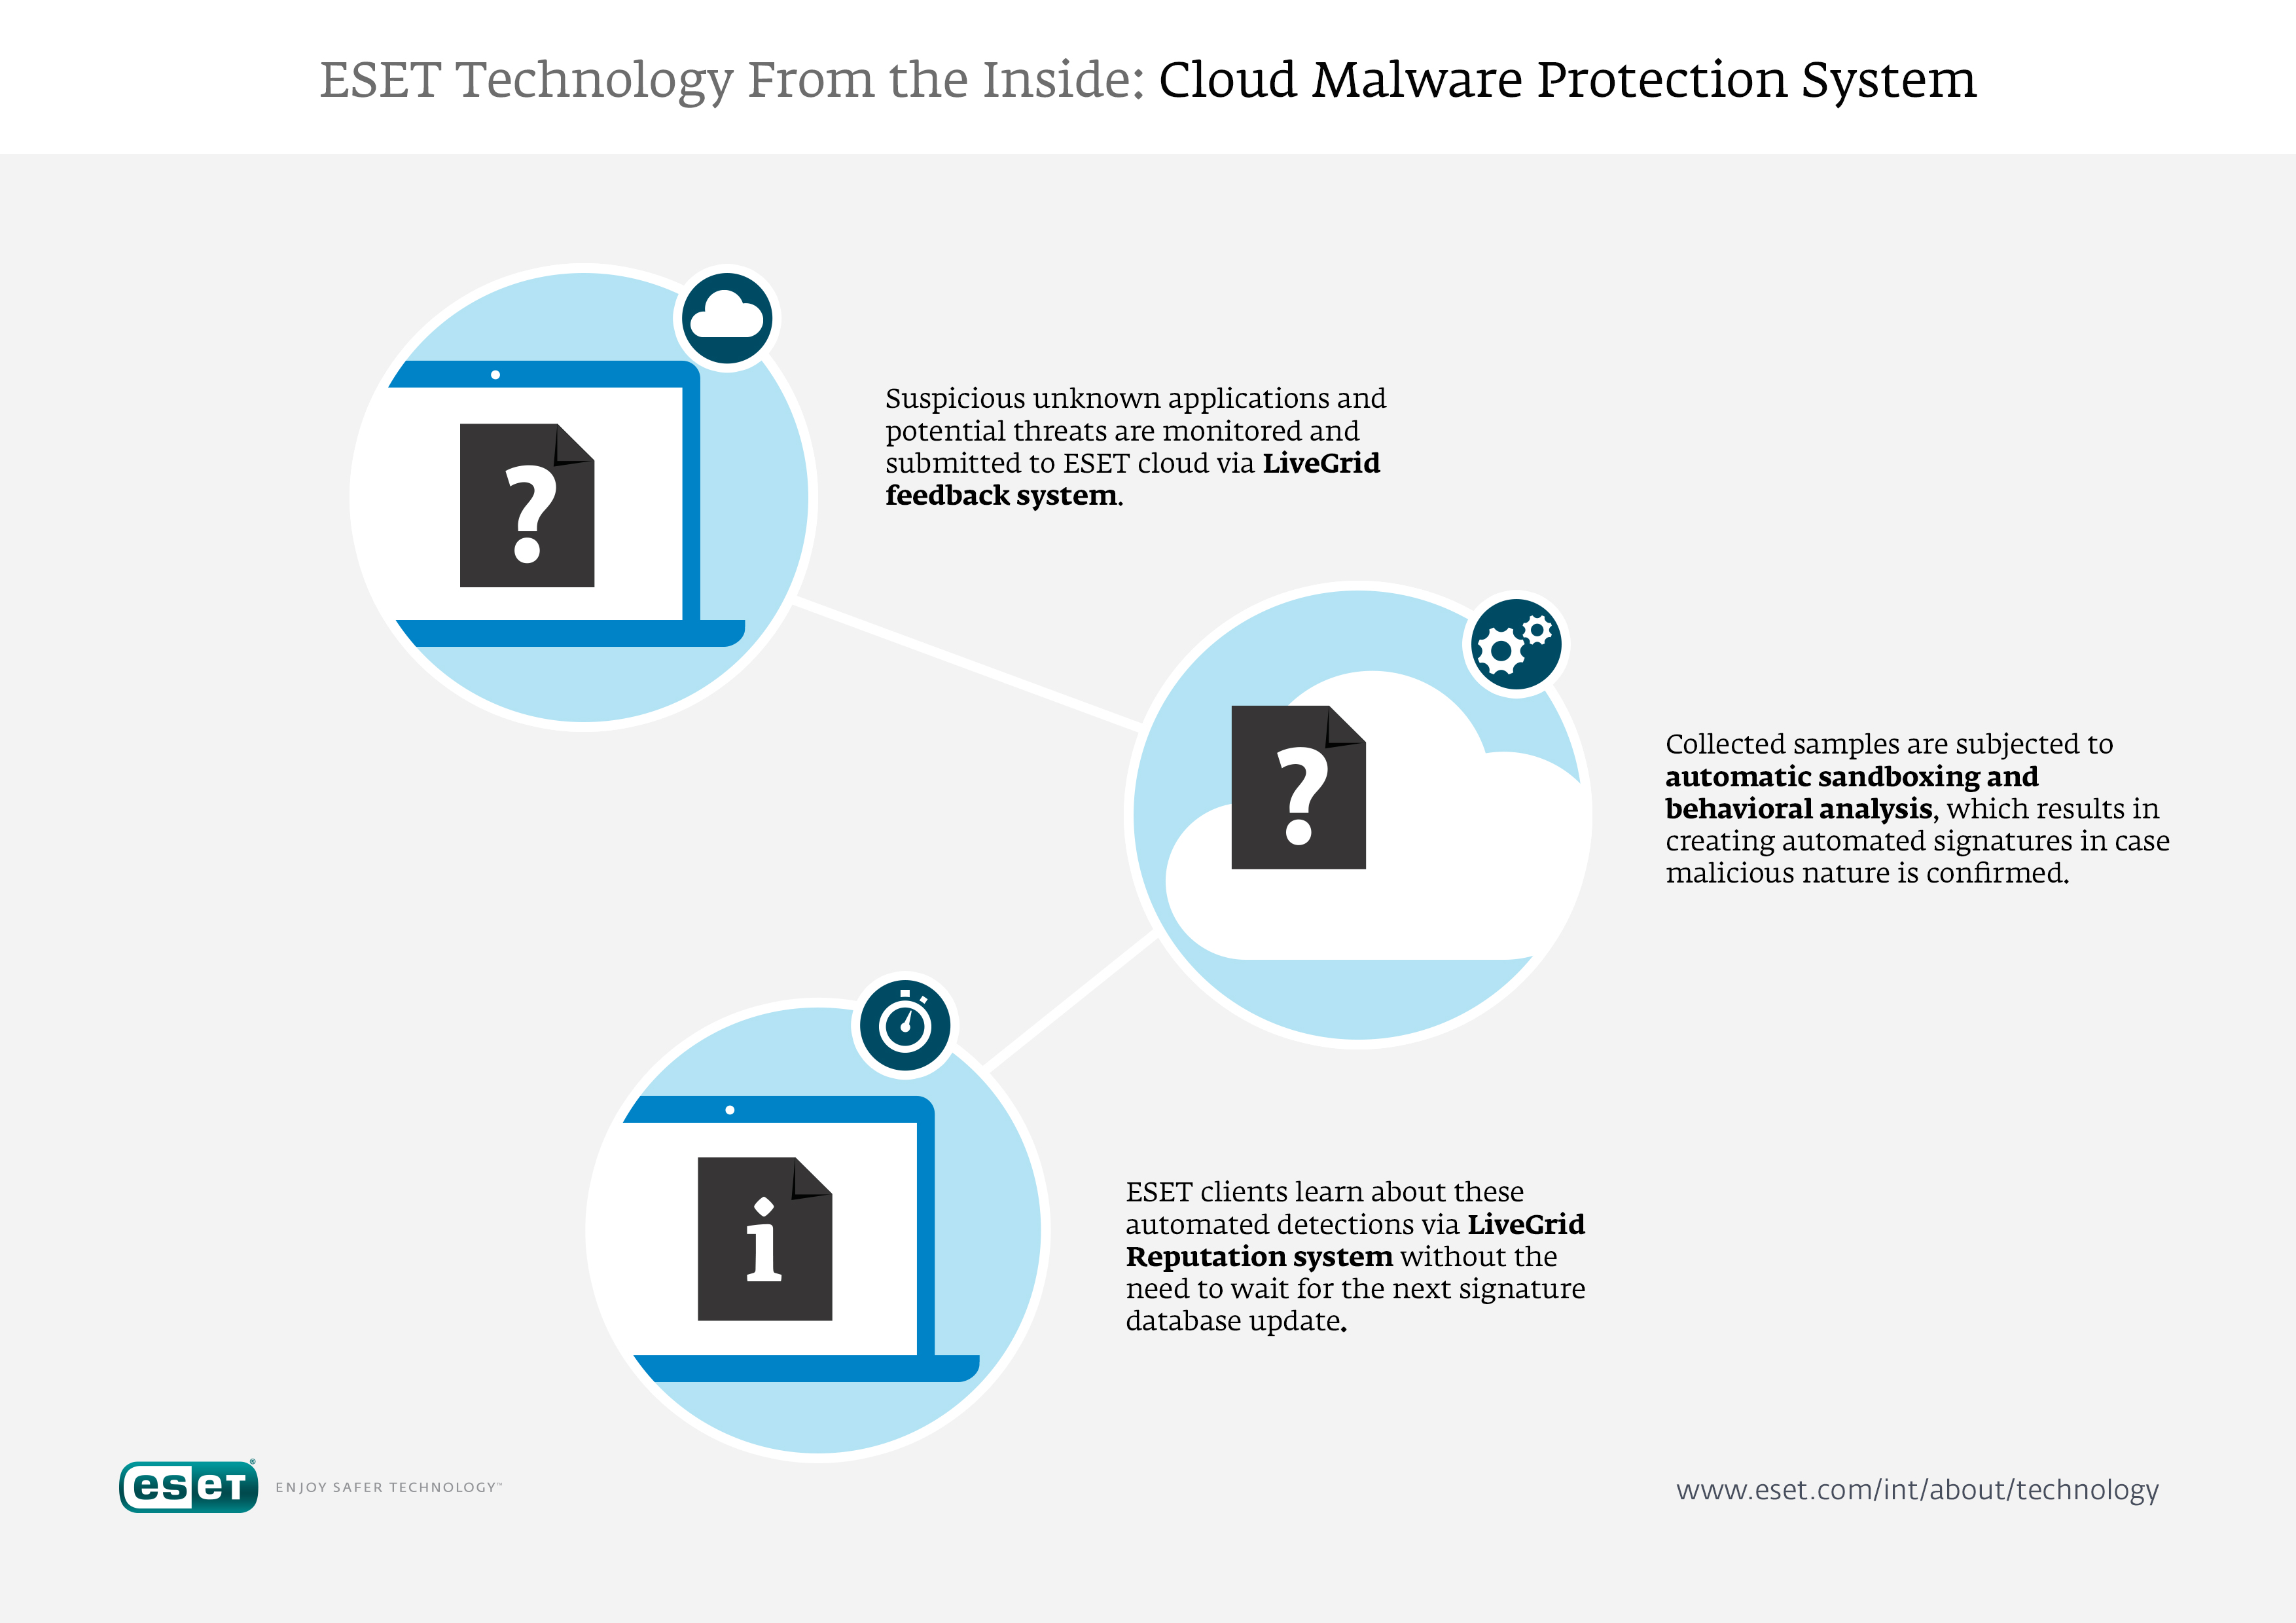 V9_09_Technology_From_The_Inside_Cloud_Malware_Protection_System